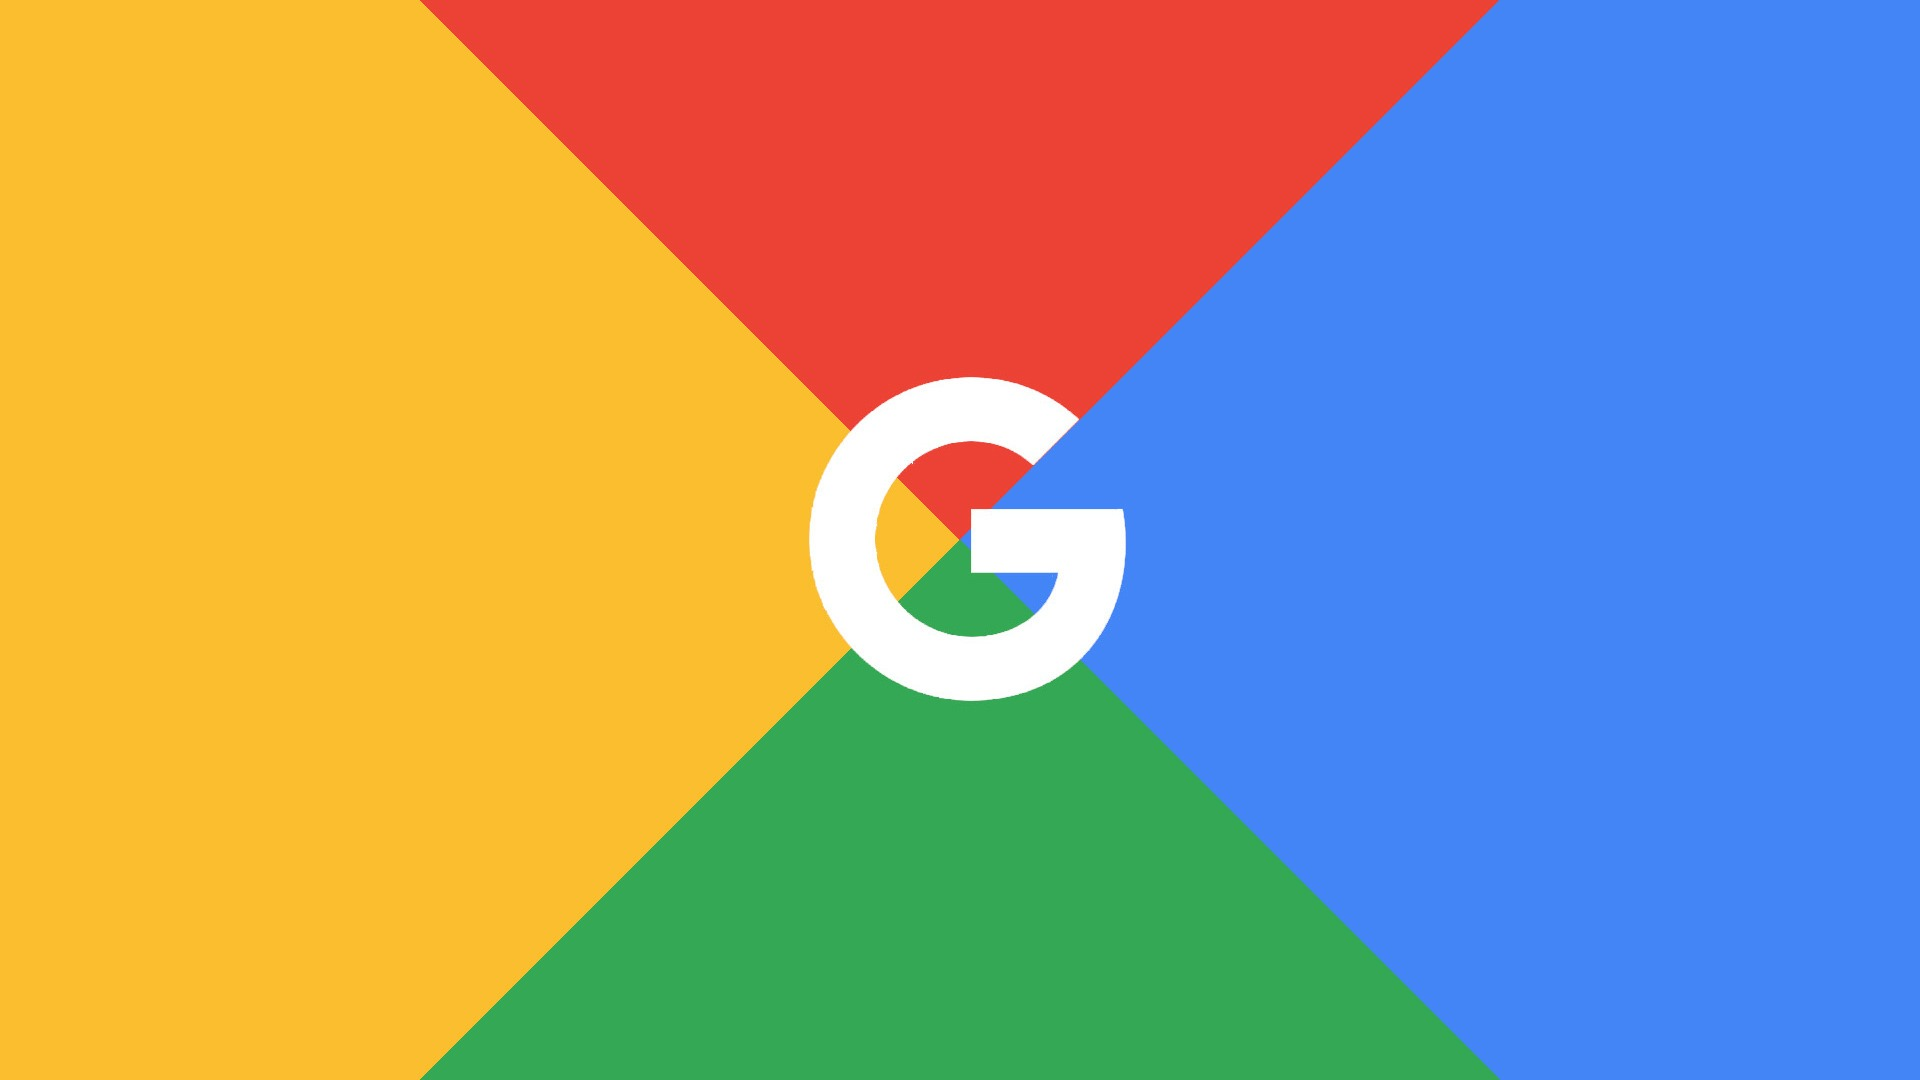 Googles free service instantly translates words phrases and web pages between English and over 100 other languages